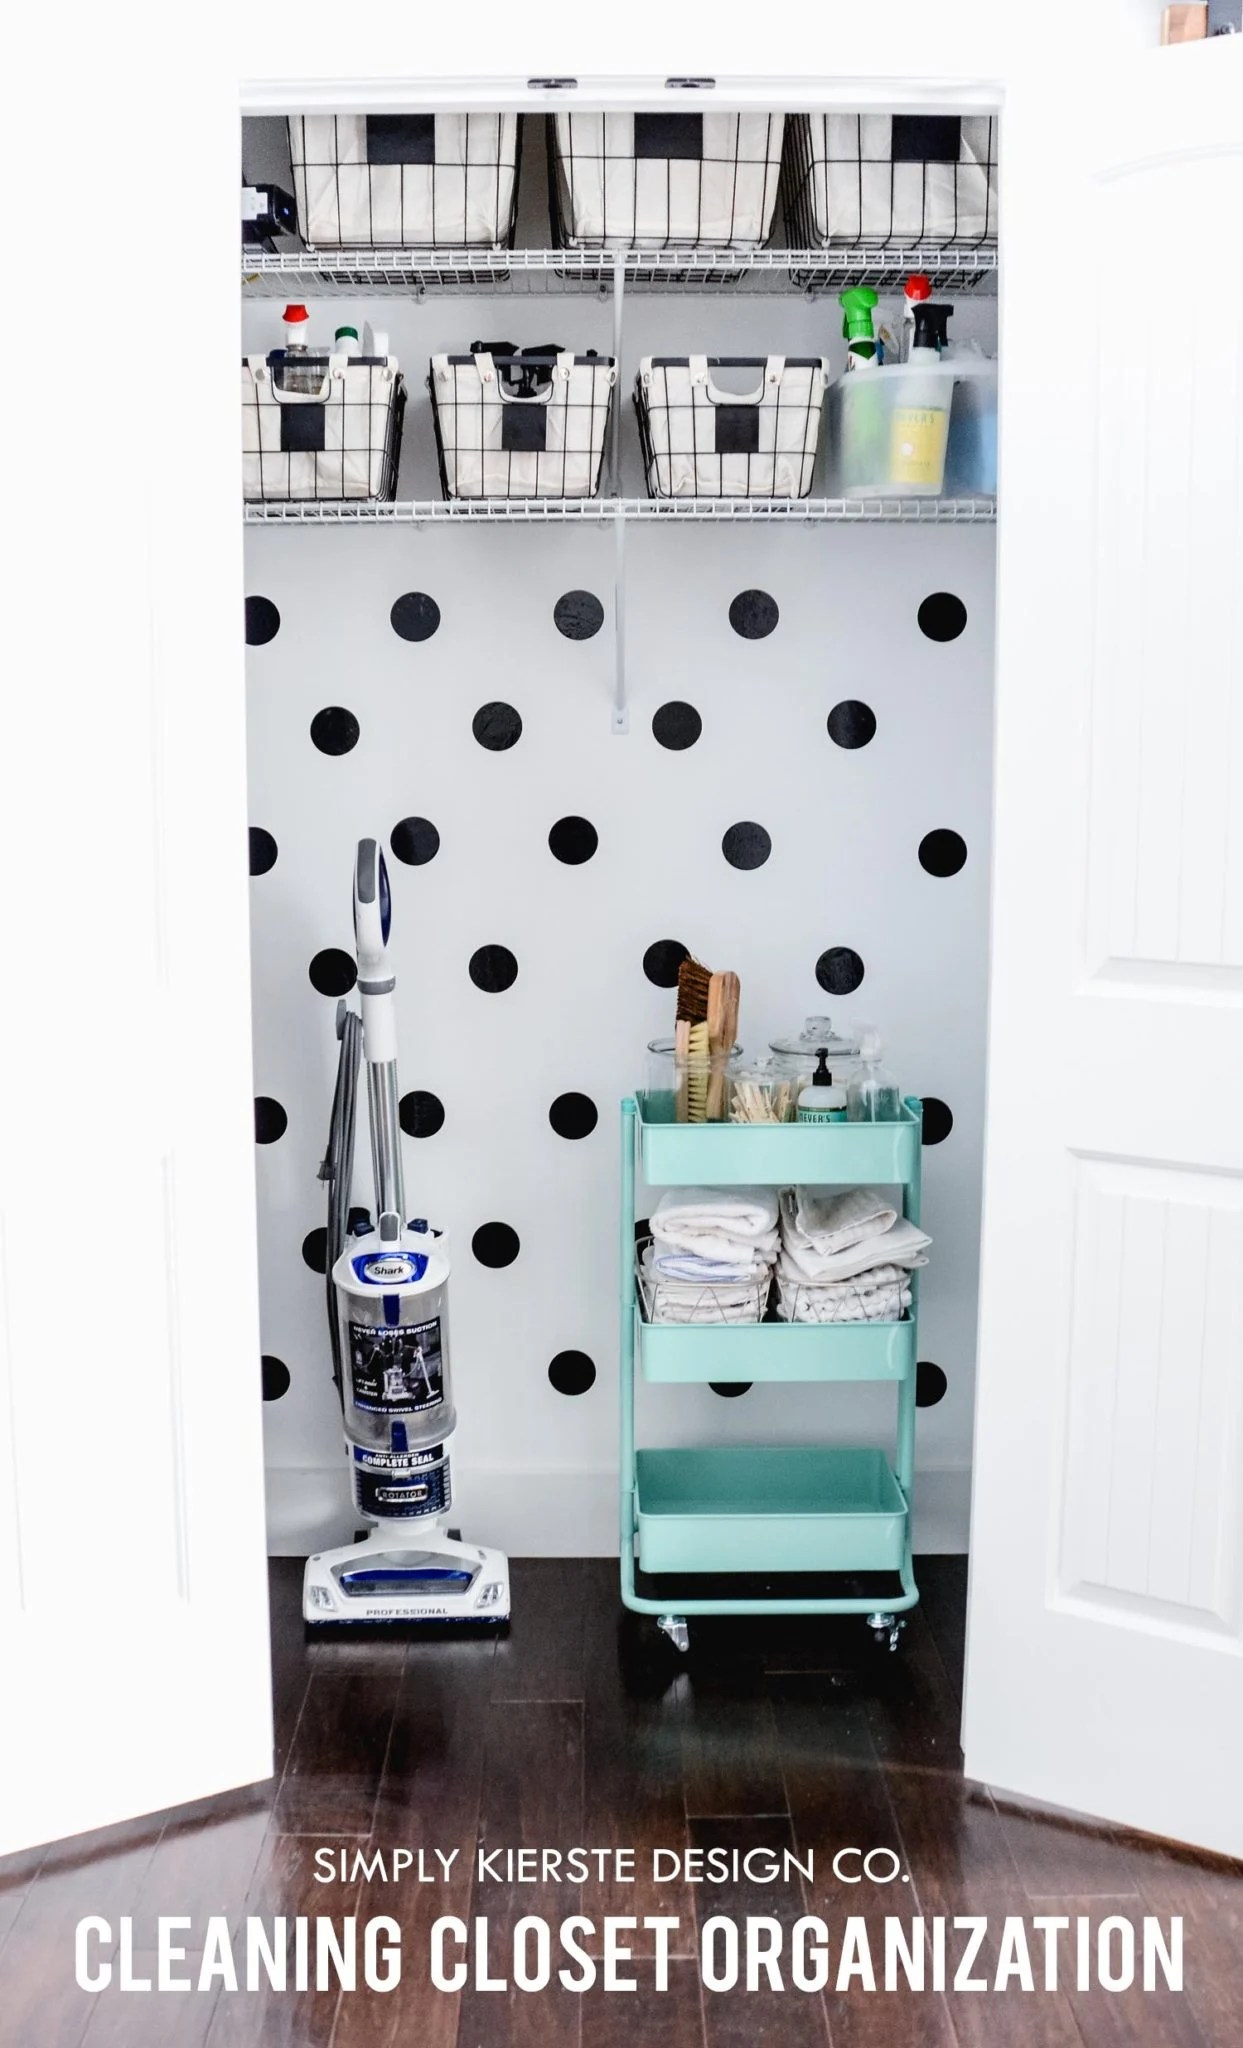 Cleaning Closet Makeover | Organization Ideas | oldsaltfarm.com #cleaningcloset #cleaningtips #cleaningorganization #organizationideas